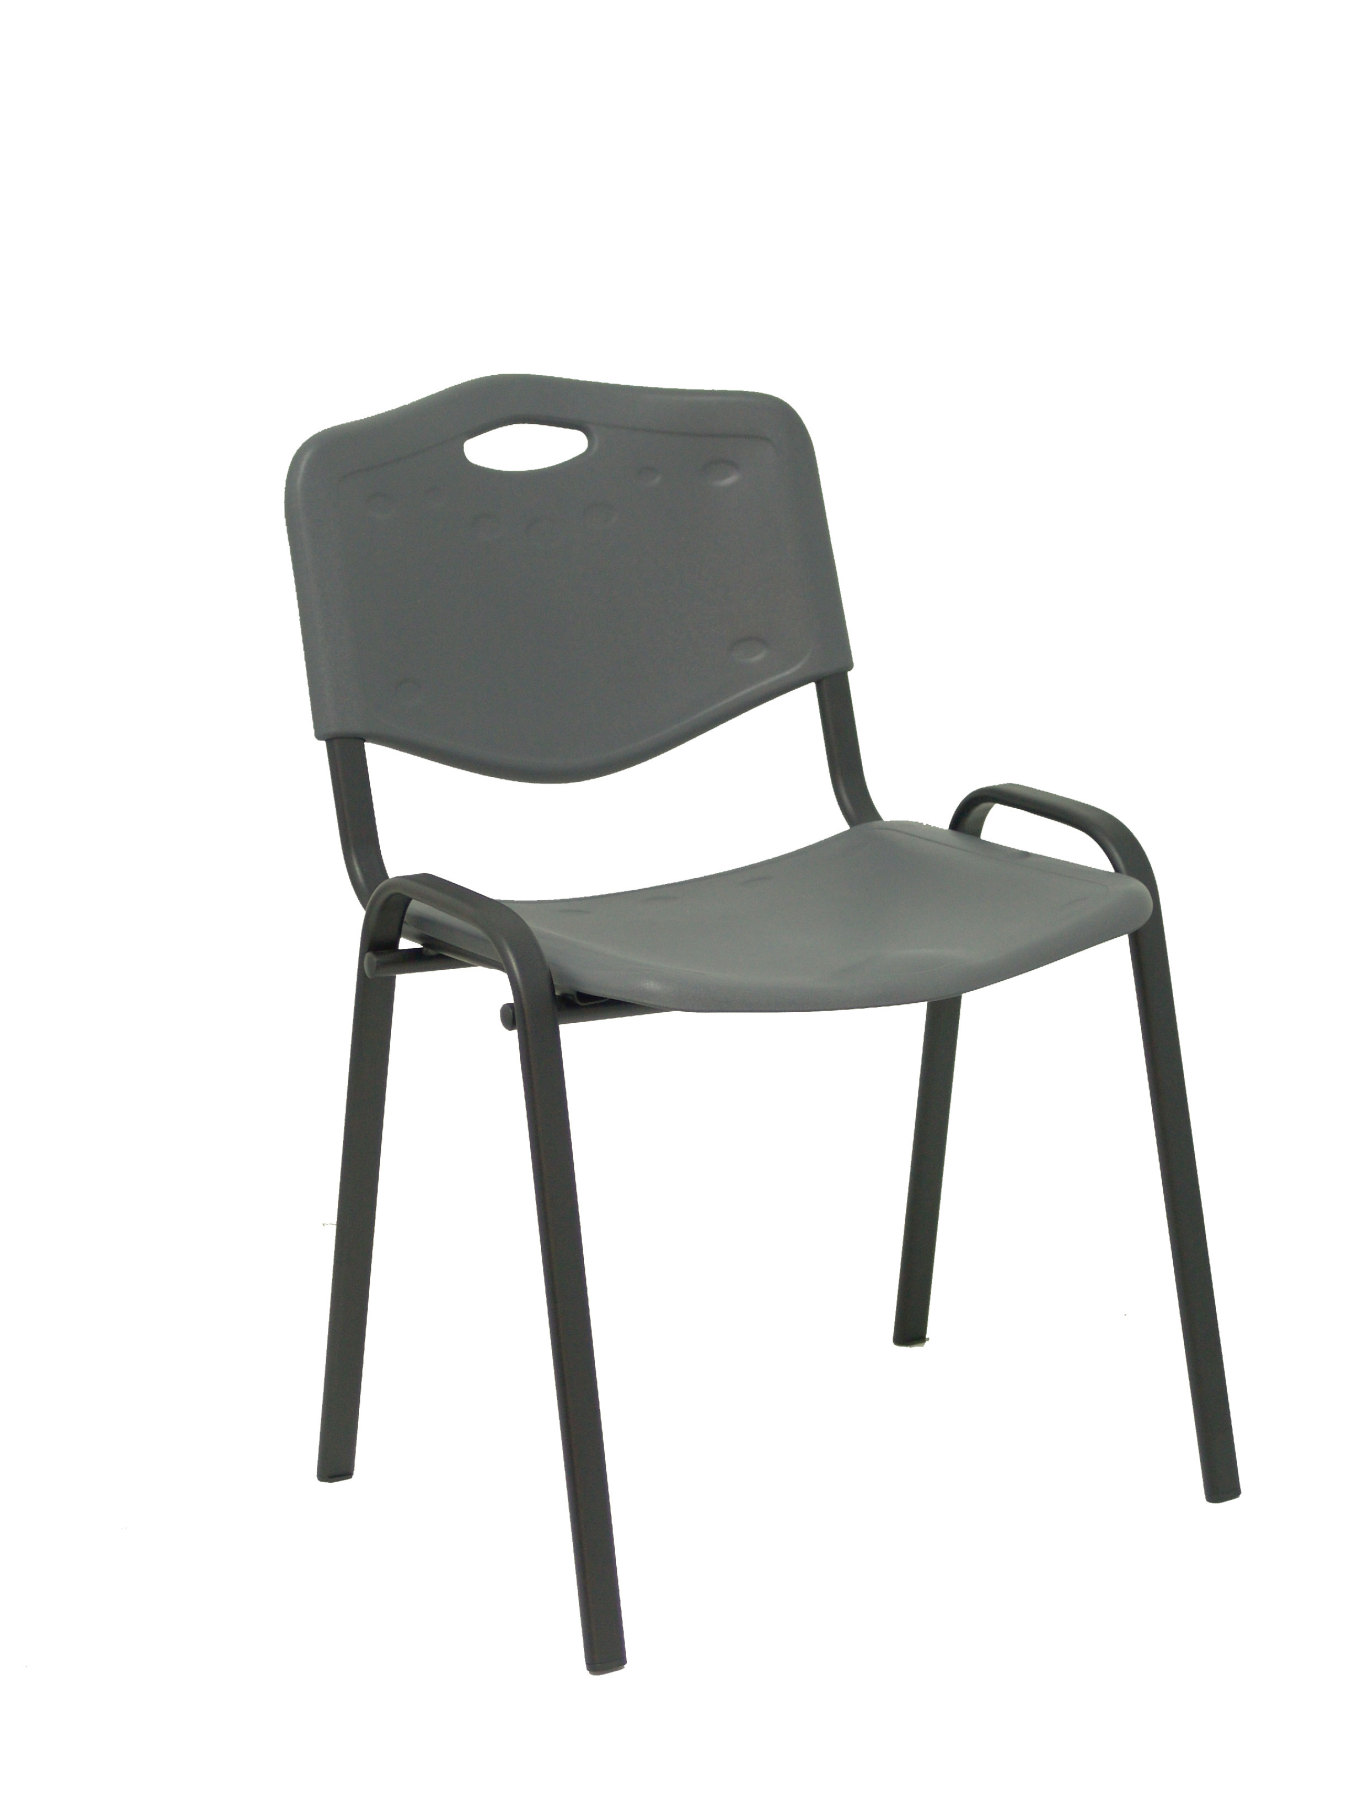 Confident Chair Ergonomic, Stackable, Multi-purpose And Structure In Black-Seat And Backrest PVC Color Gray (CO